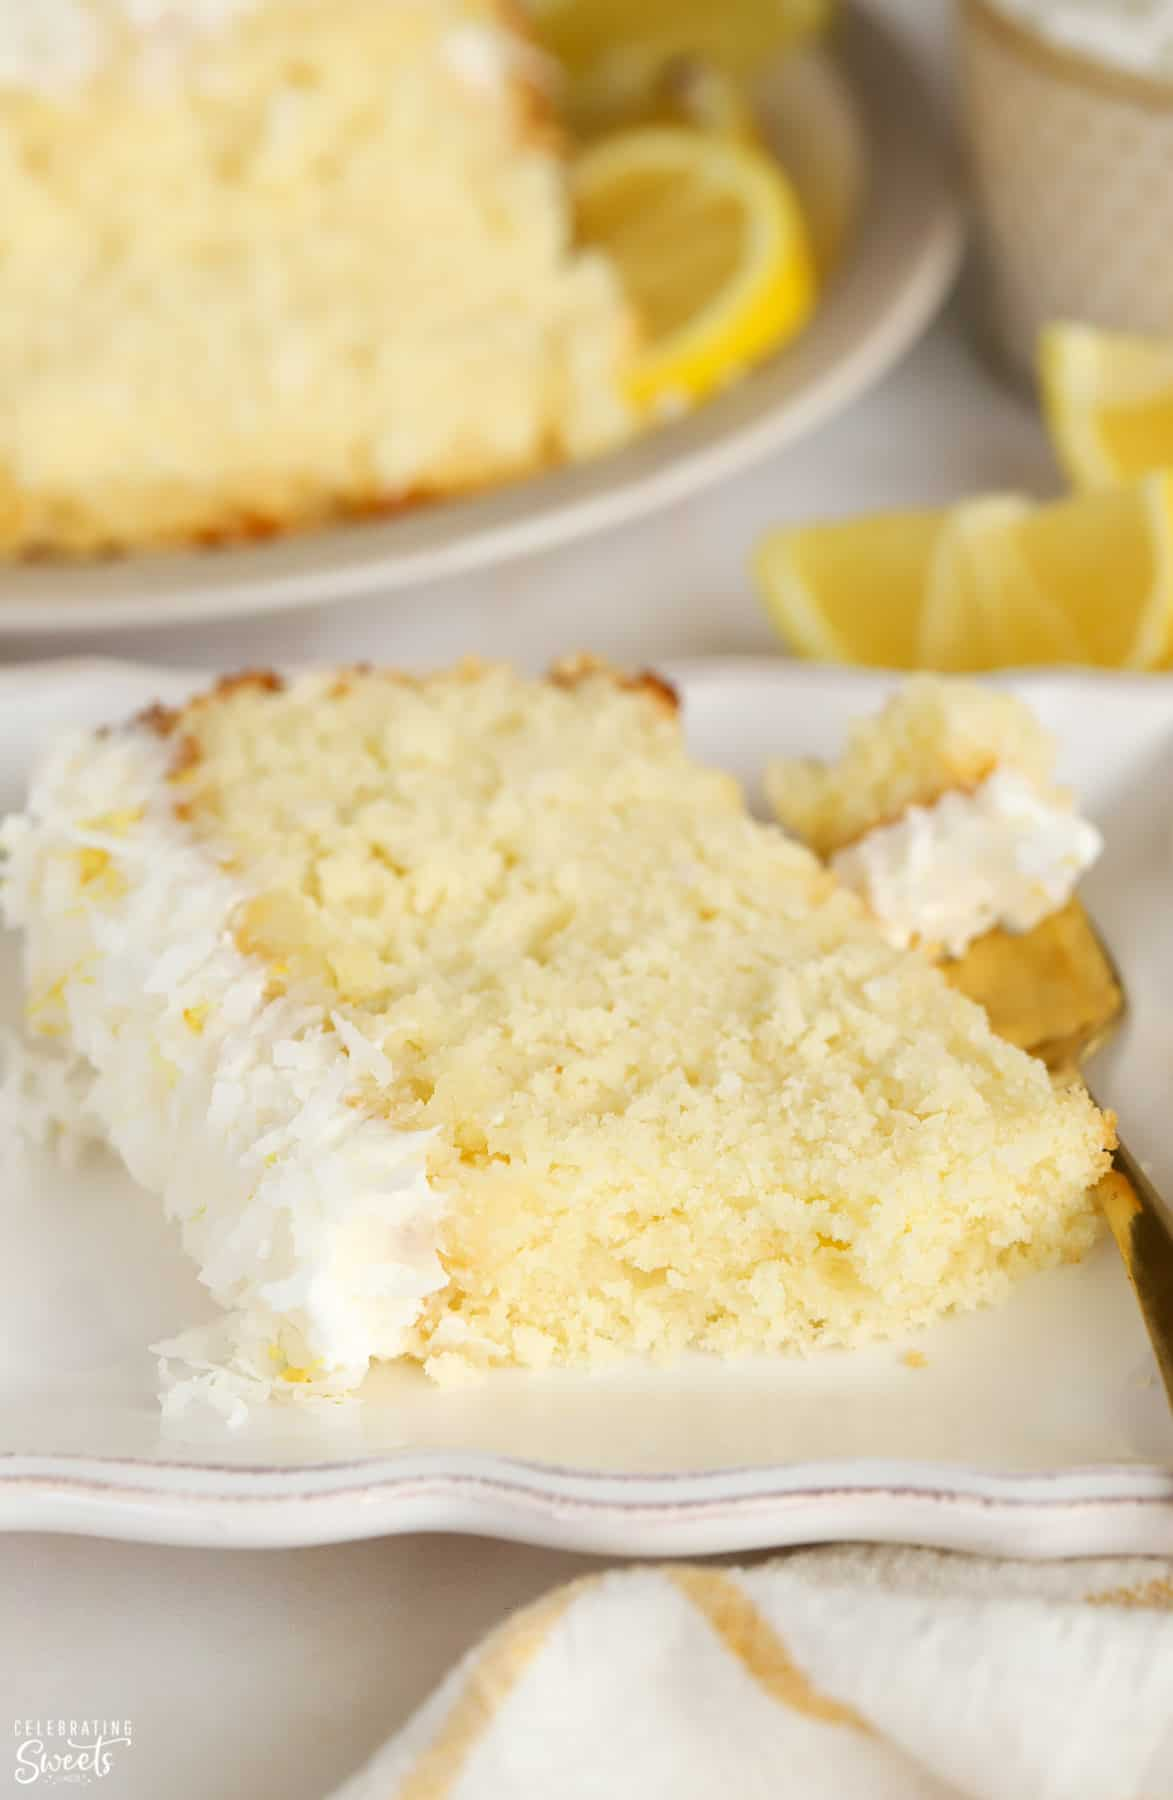 Slice of lemon coconut cake on a white plate with a gold fork